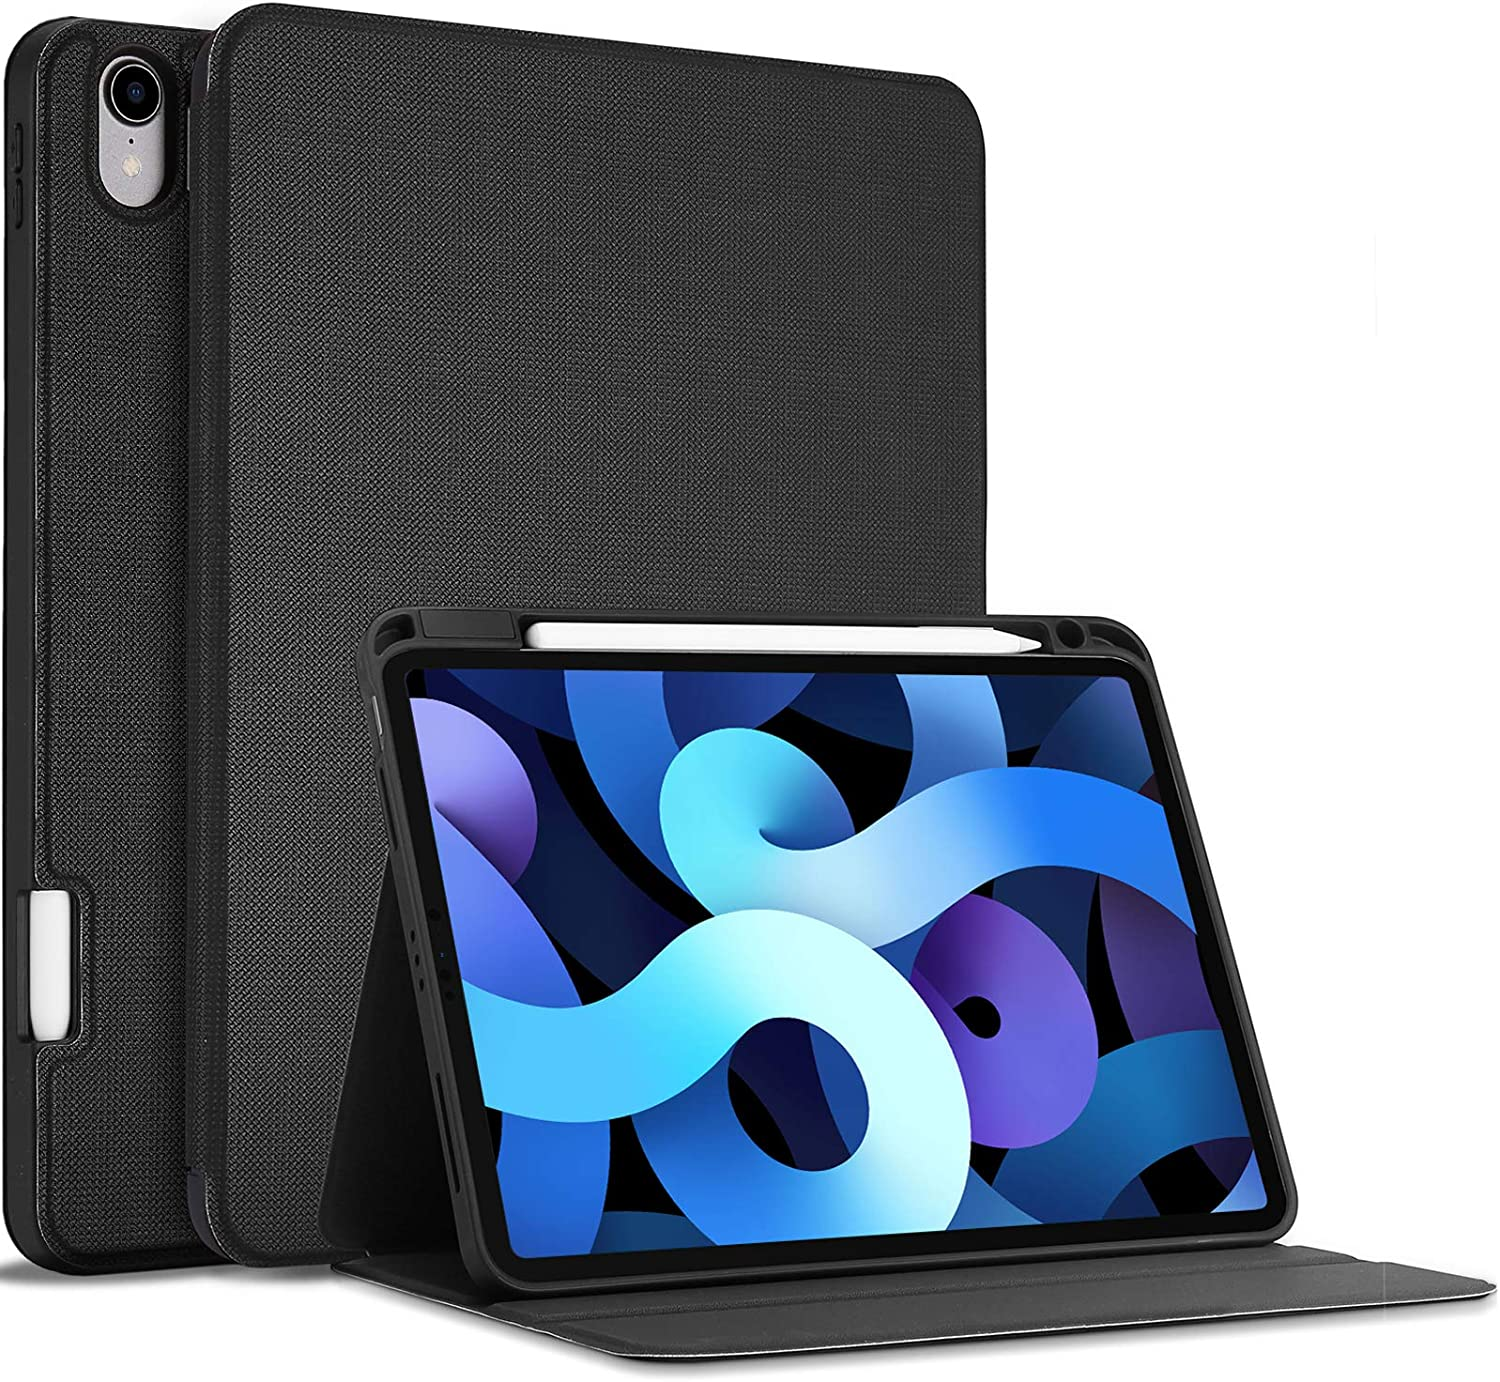 ProCase New iPad Air 4 Case (Latest Model), iPad 10.9 inch 2020 Case with Pencil Holder, Slim Protective Folio Stand Cover for iPad Air 4th Generation 10.9 inch 2020 Release -Black